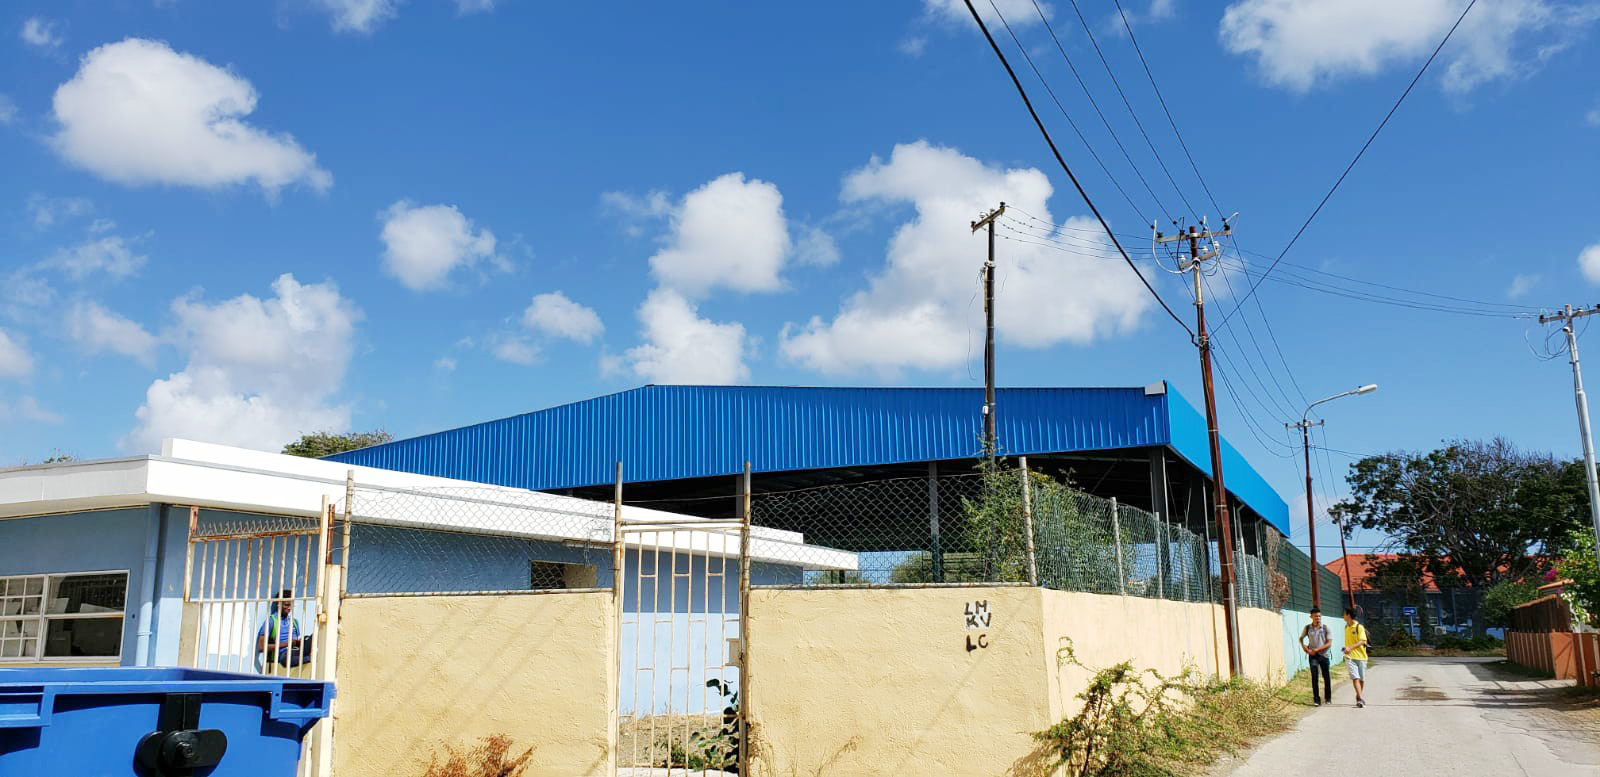 steel sporting facilities outlook